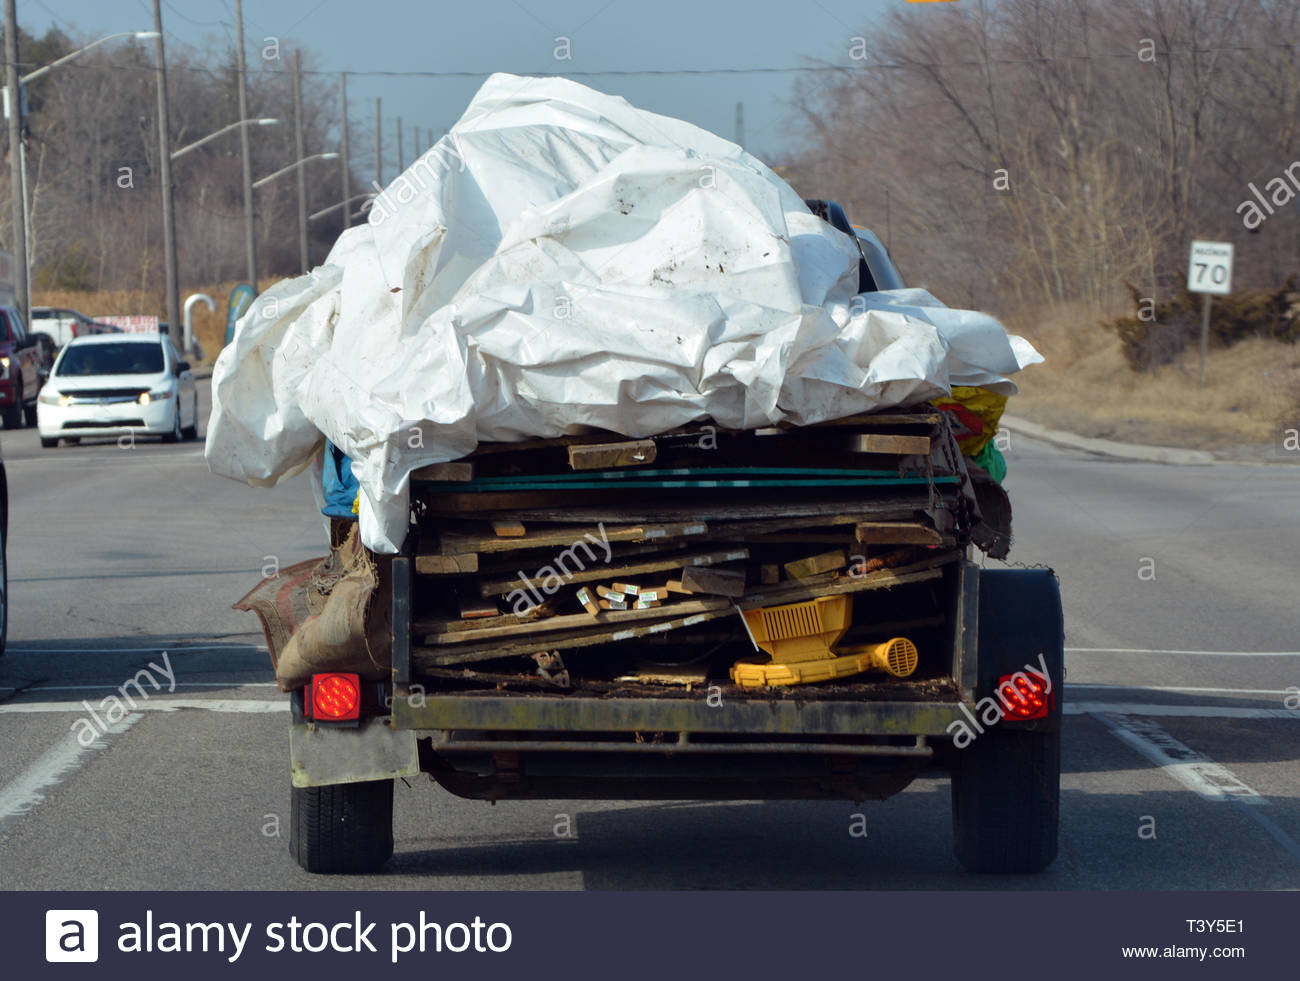 Trailer loaded with waste - Stock Image